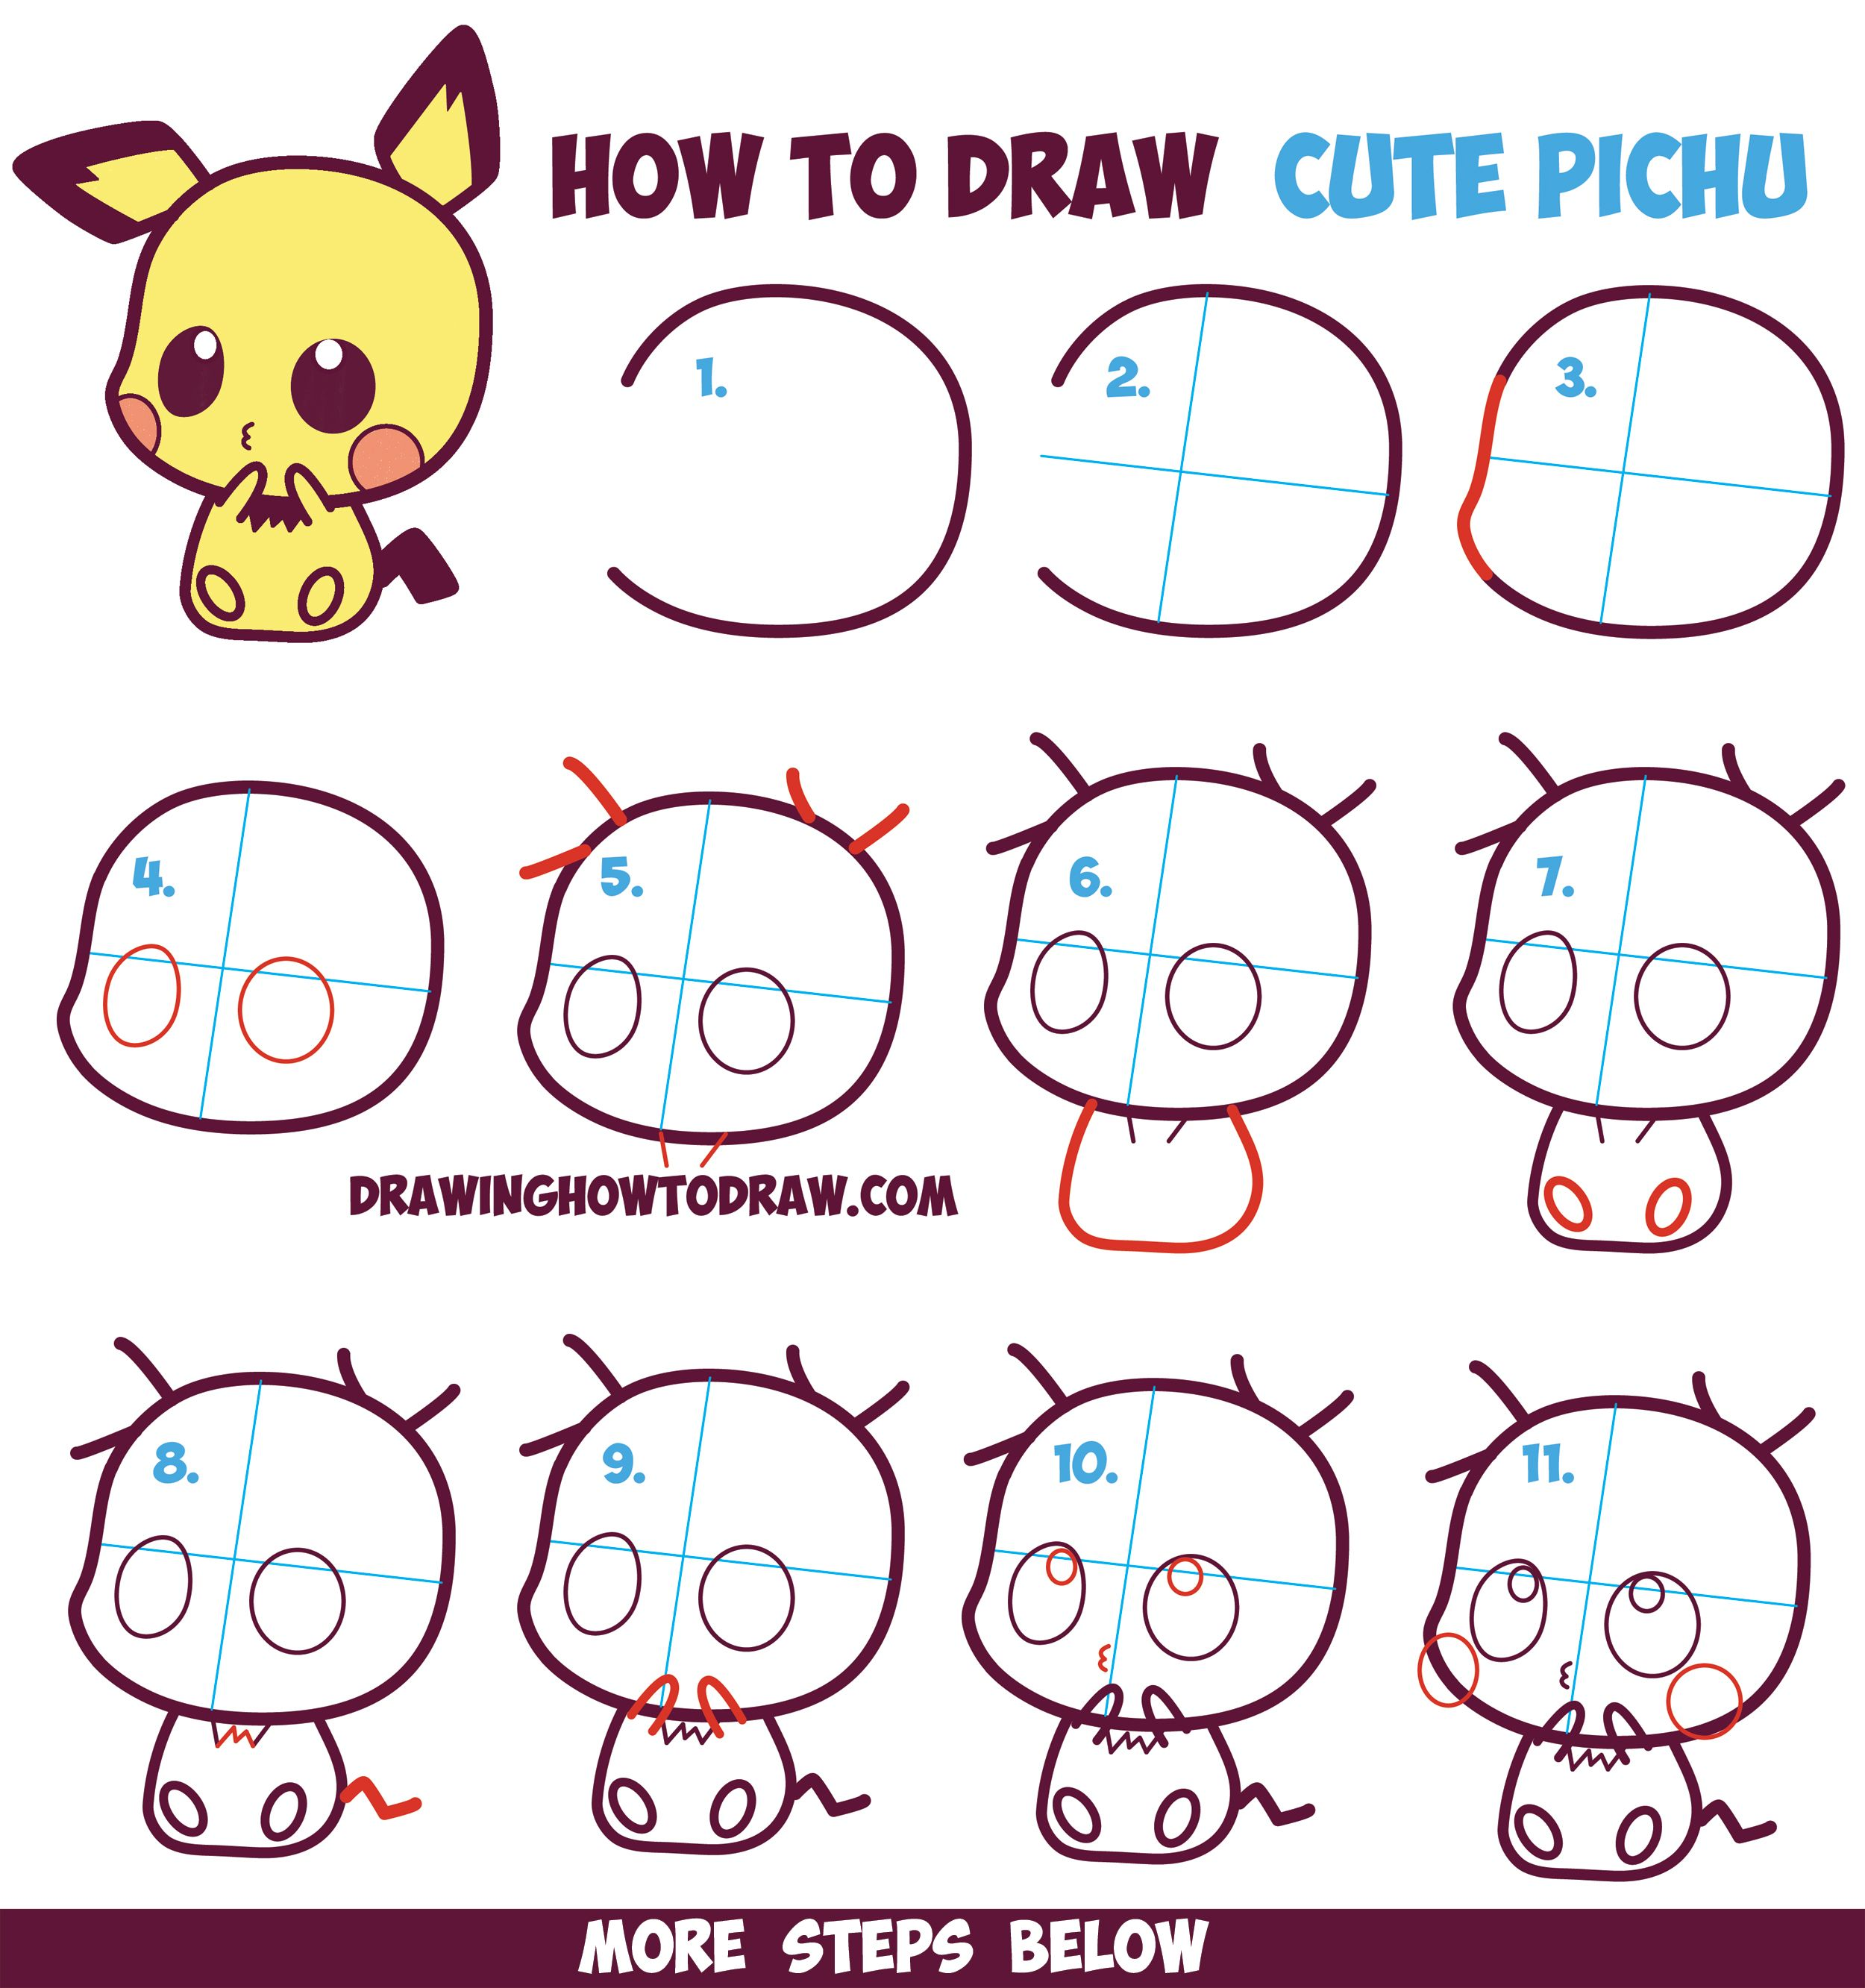 How to Draw Cute / Kawaii / Chibi Pichu from Pokemon in ...